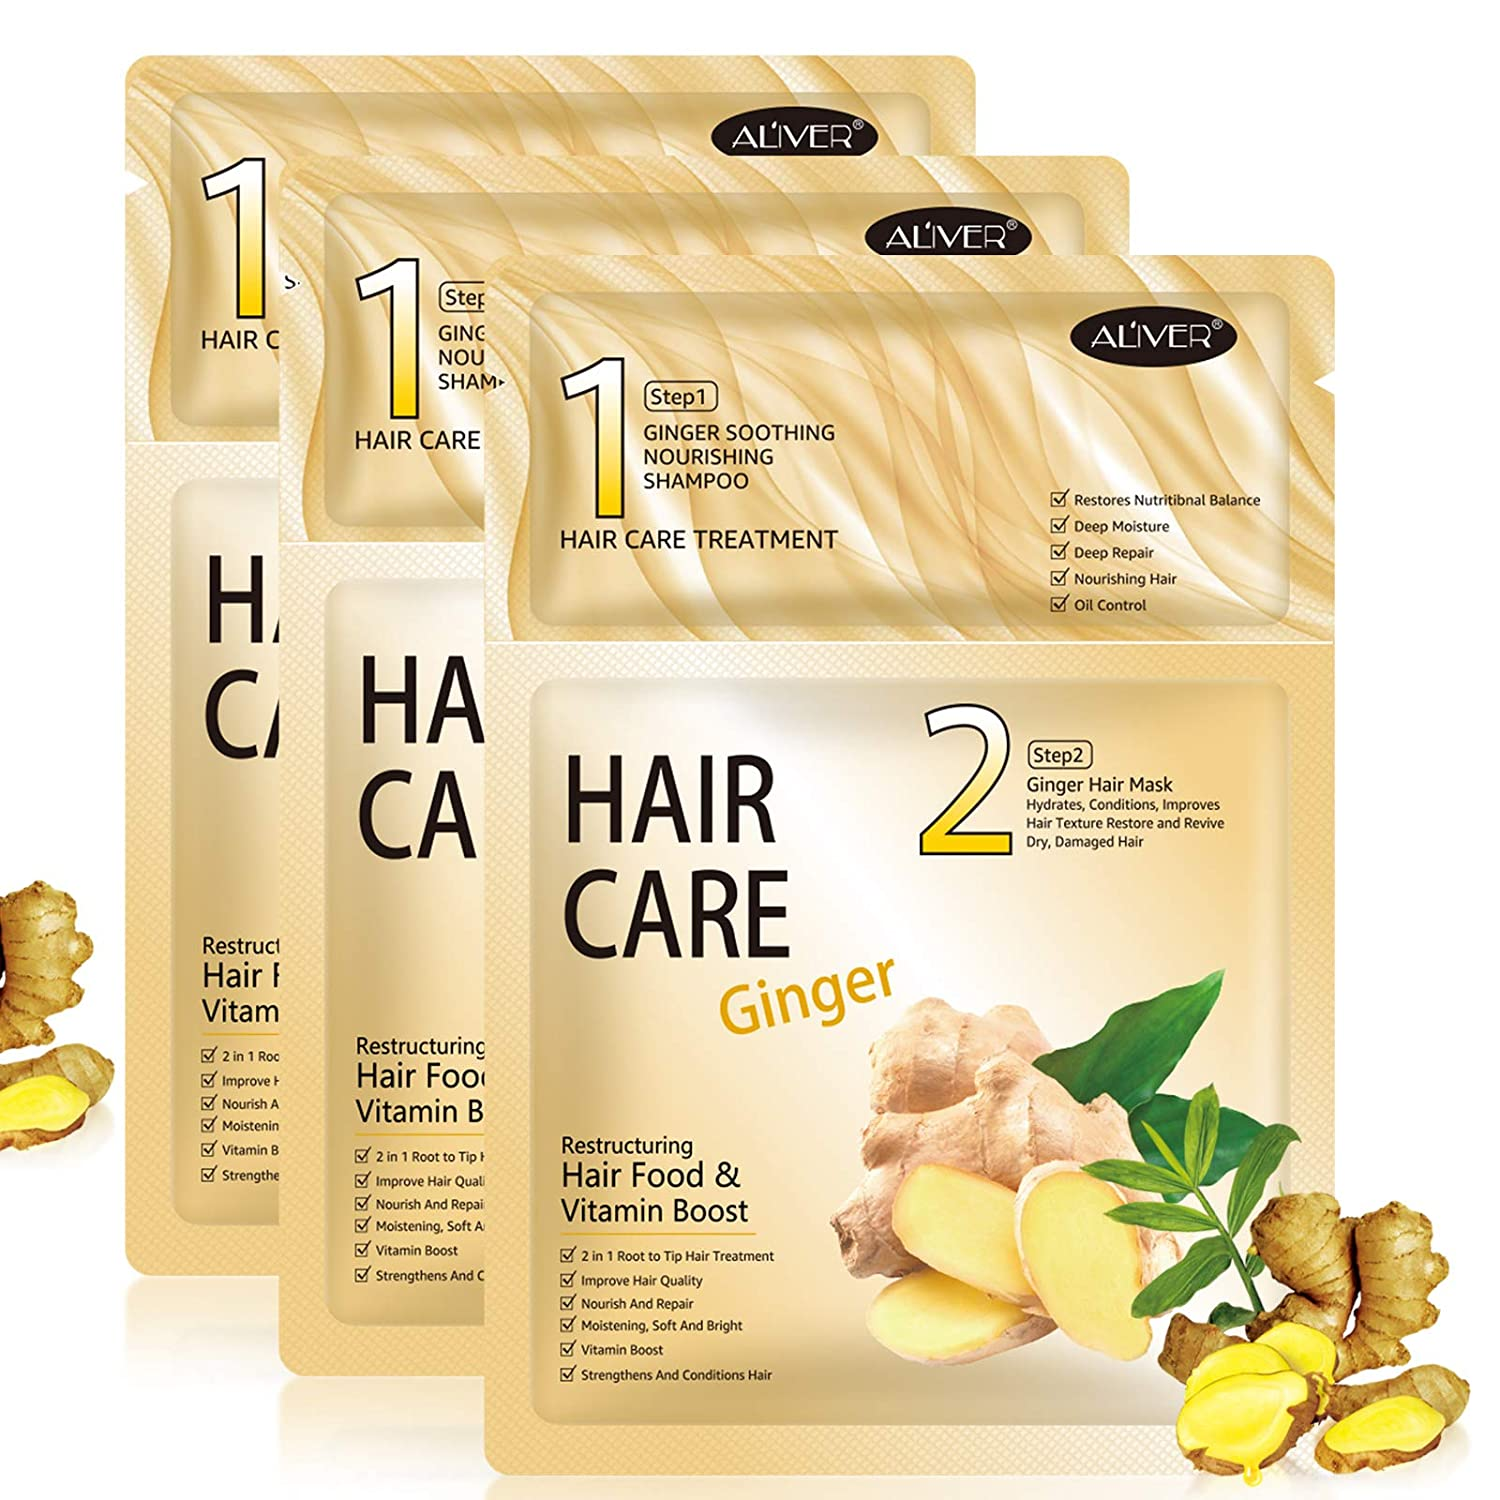 Hair Mask 3 pack, Hair Mask for Dry Damaged Hair, Deep Conditioner Hair Treatment, Hair Masks Care for Curly Oily Frizzy Hair and Dry Scalp: Beauty